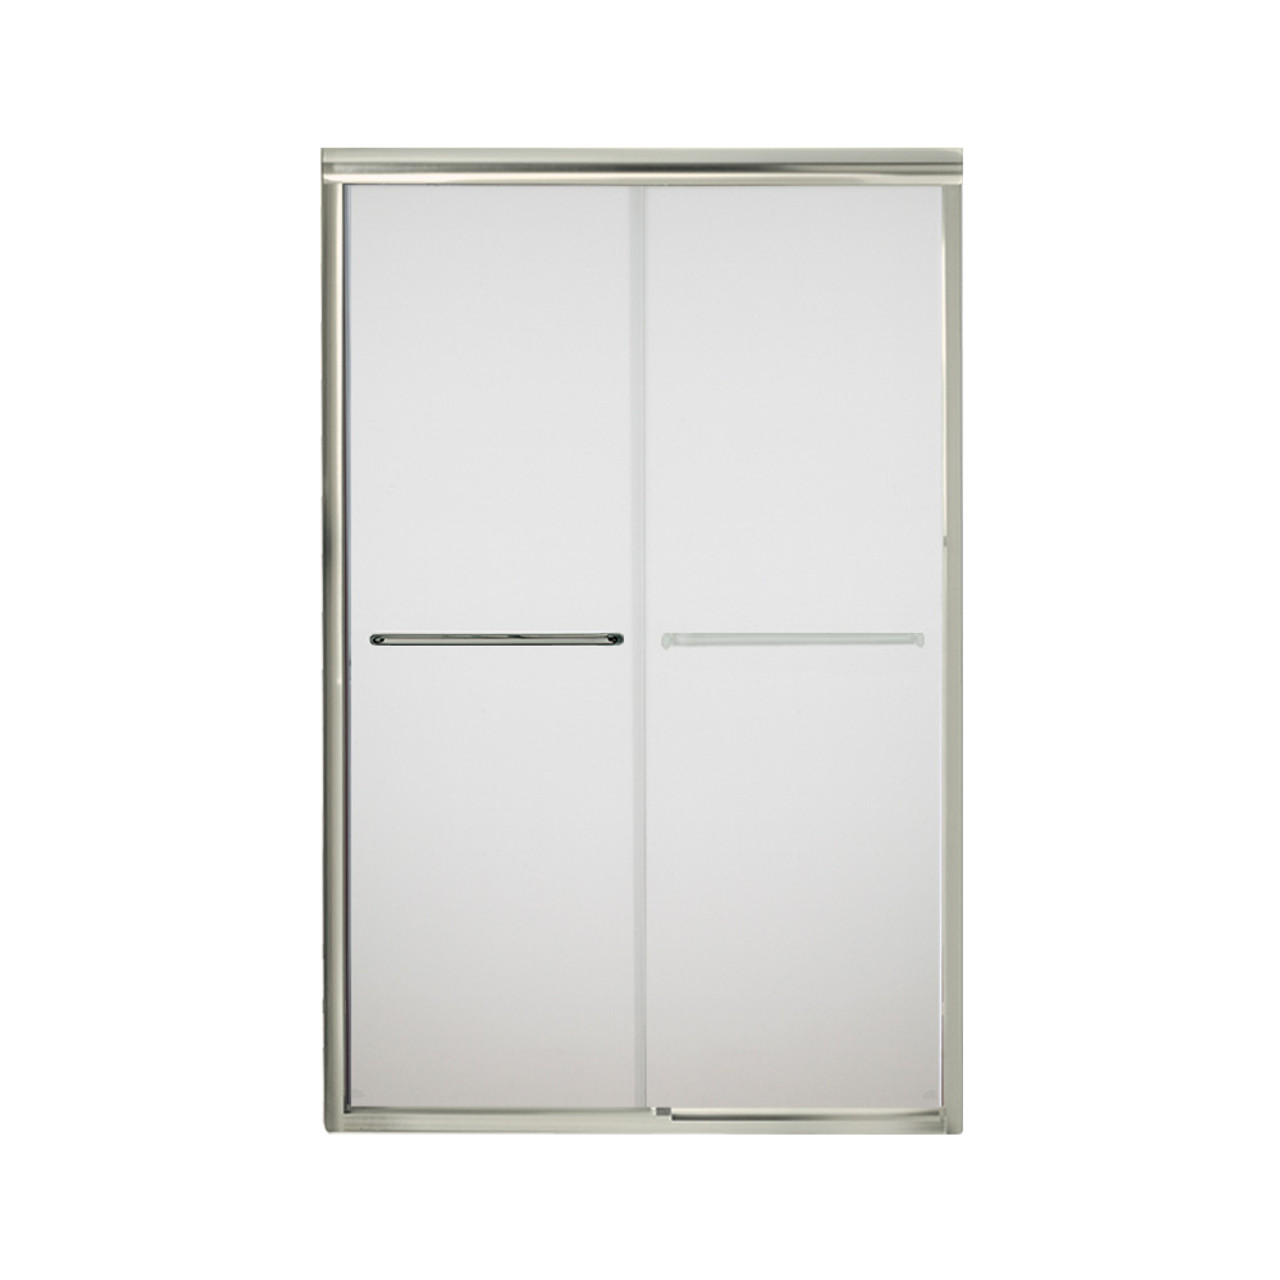 Sterling 5475 48n G03 Finesse 42 625 To 47 625 In X 70 0625 In Frameless Sliding Alcove Shower Door With Frosted Glass